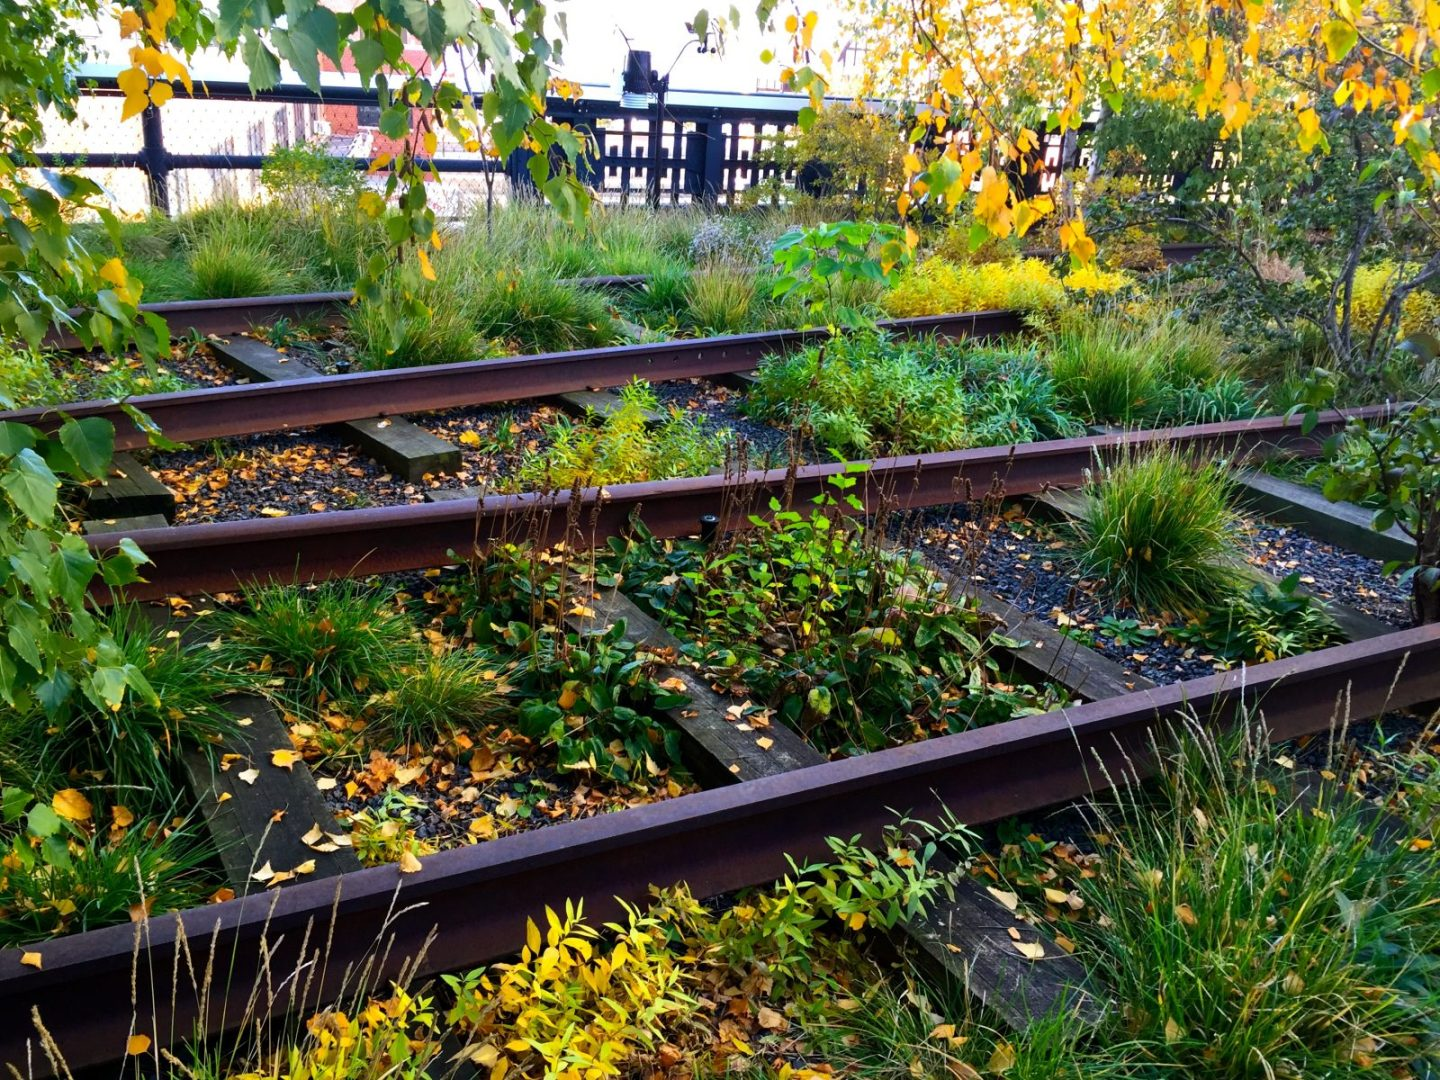 New York's Beloved Park: Everyone Loves the High Line